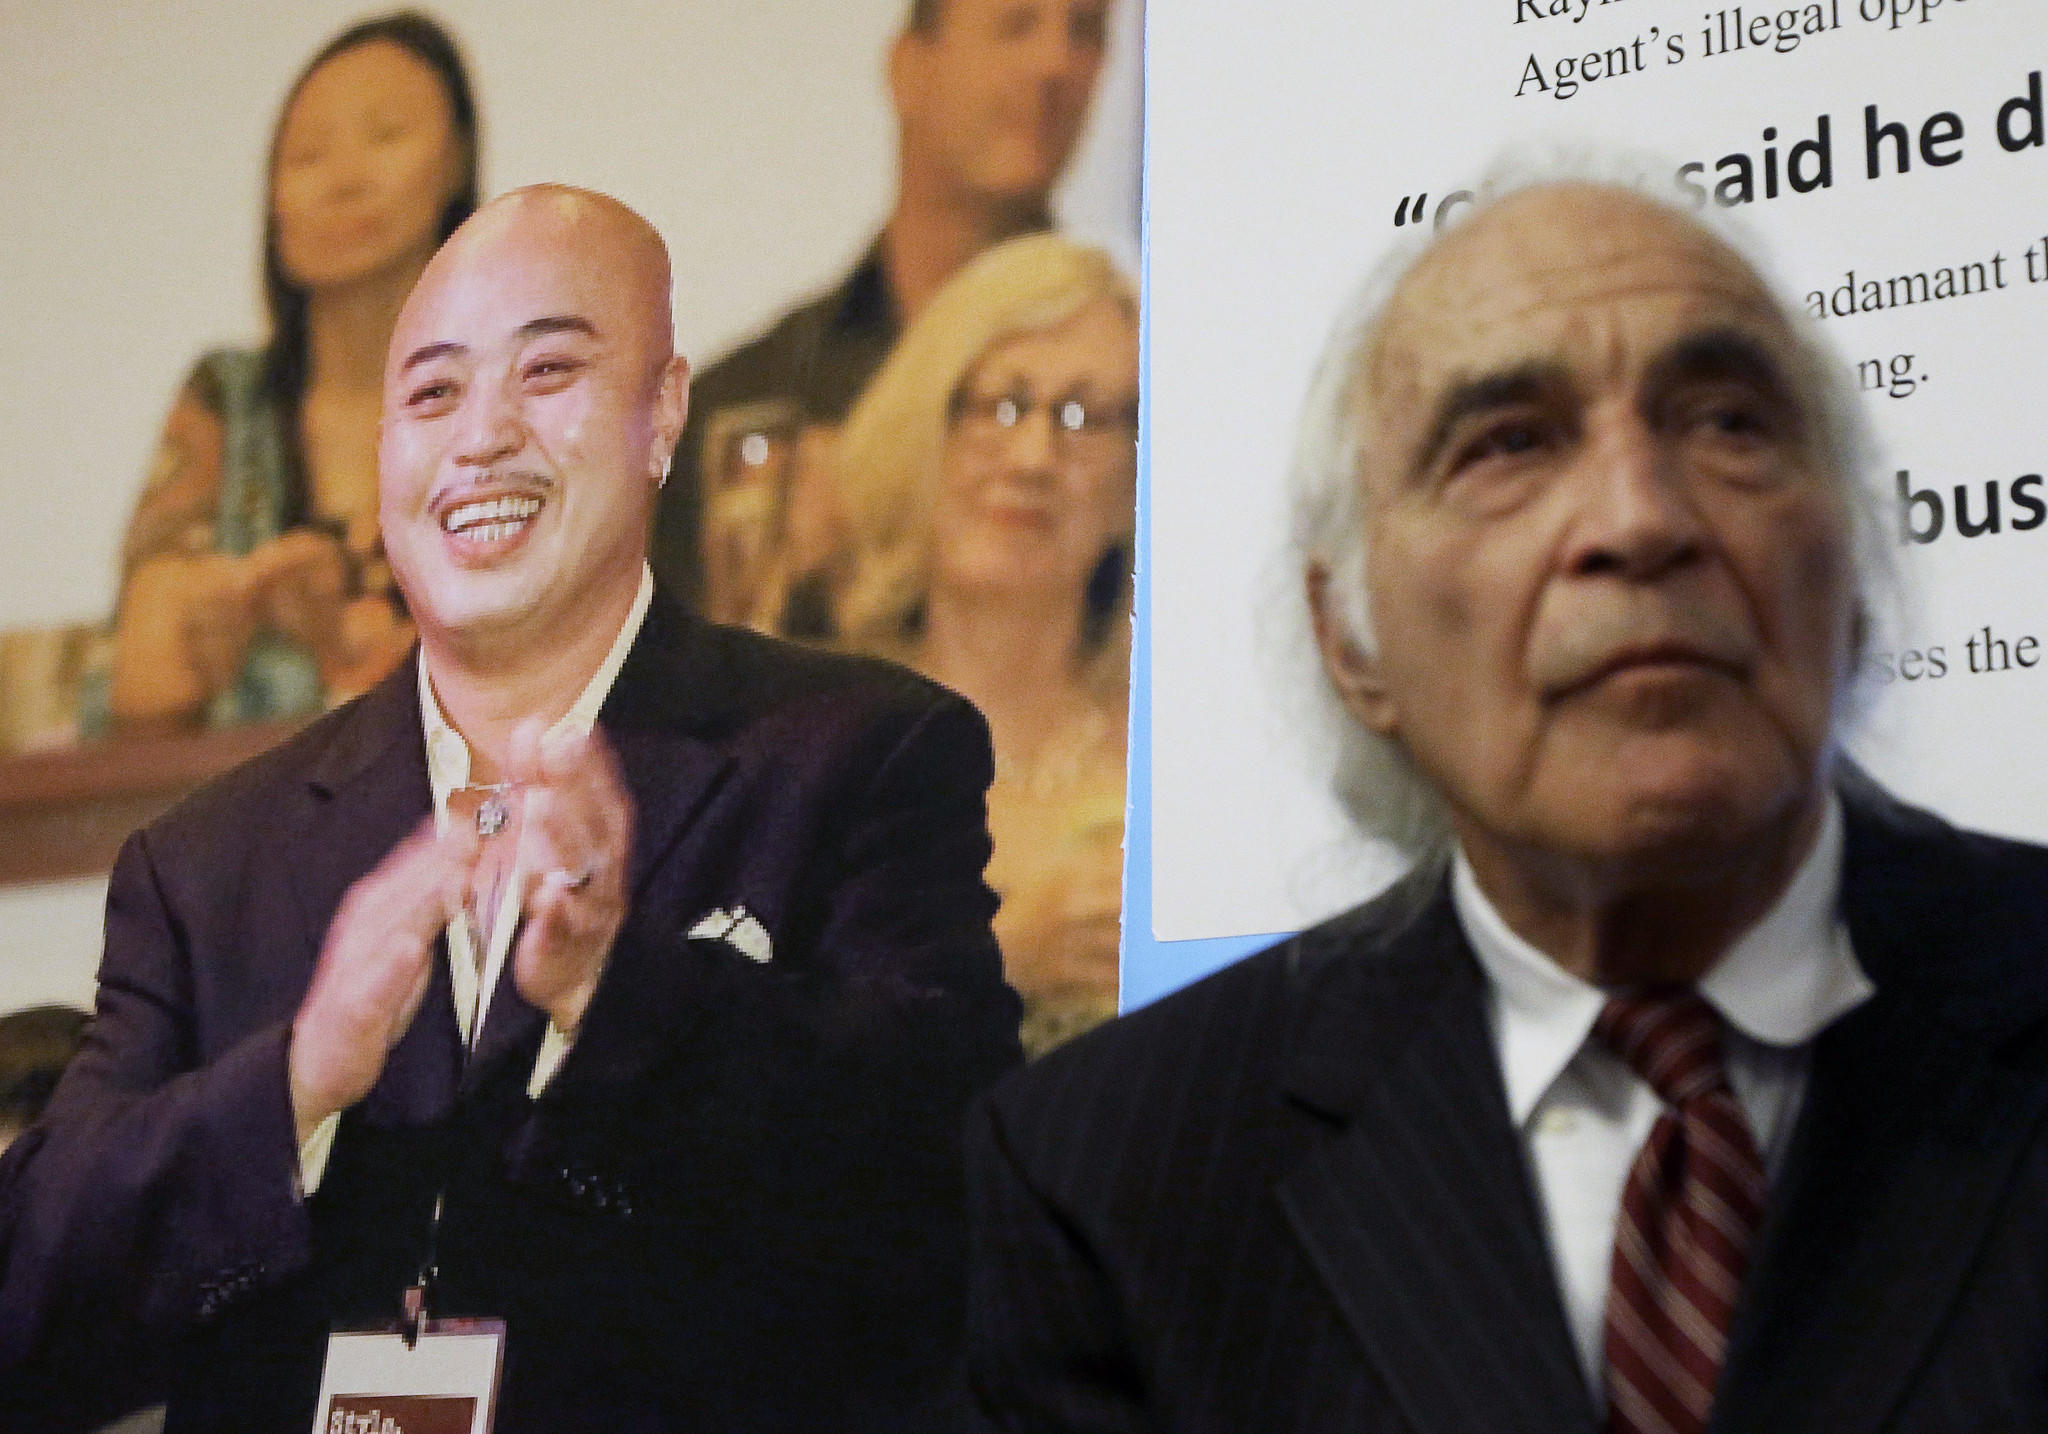 """Raymond """"Shrimp Boy"""" Chow, depicted at left, pleaded not guilty Tuesday to money laundering and other federal charges in San Francisco. At right is his attorney, J. Tony Serra."""